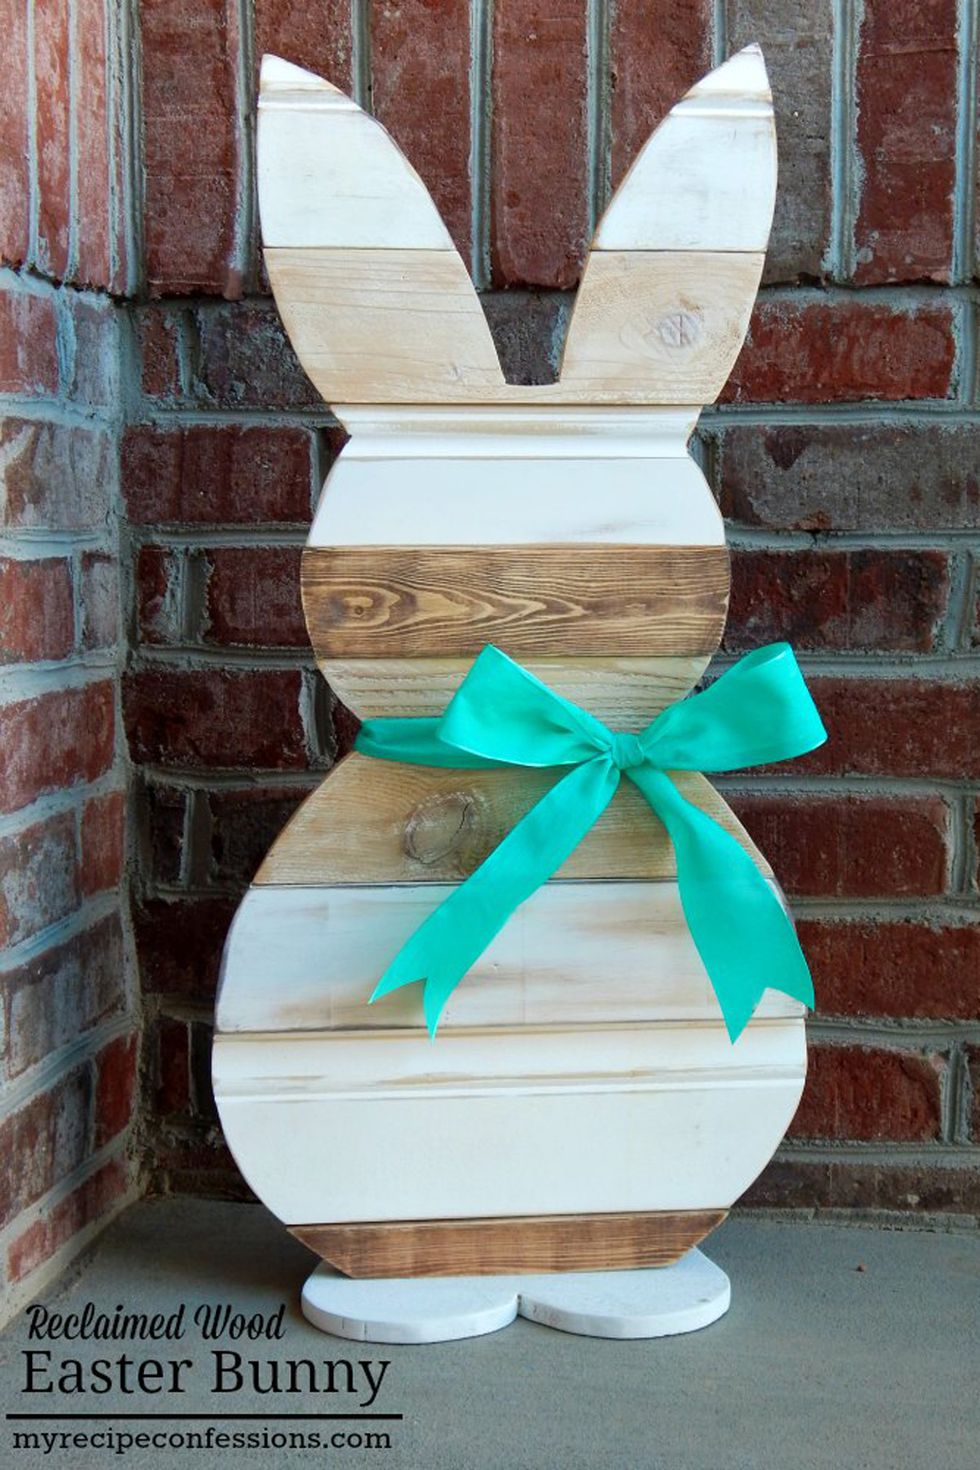 20 Awesome Last Minute DIY Easter Decor Ideas